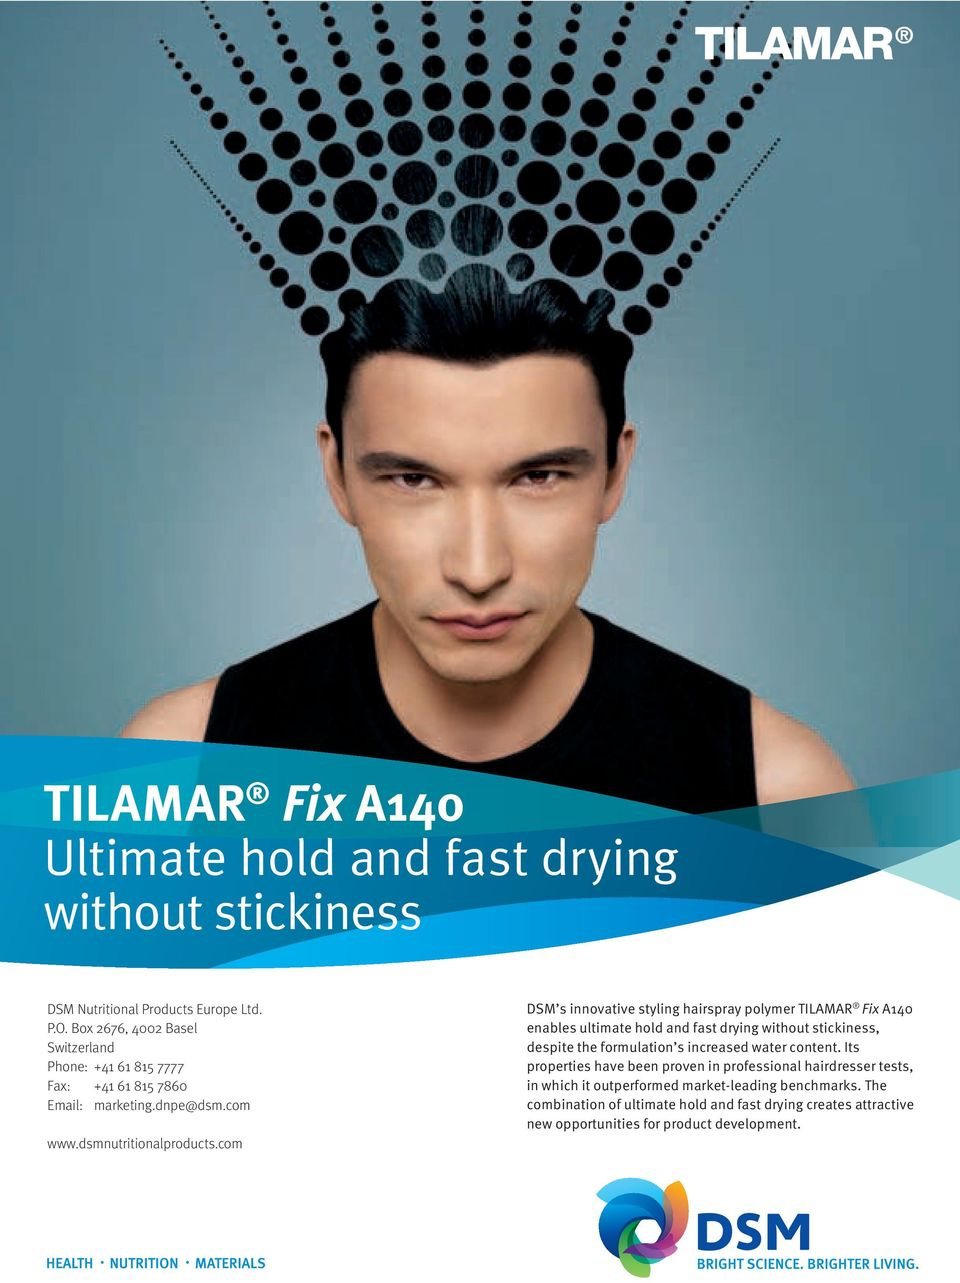 com DSM s innovative styling hairspray polymer TILAMAR Fix A140 enables ultimate hold and fast drying without stickiness, despite the formulation s increased